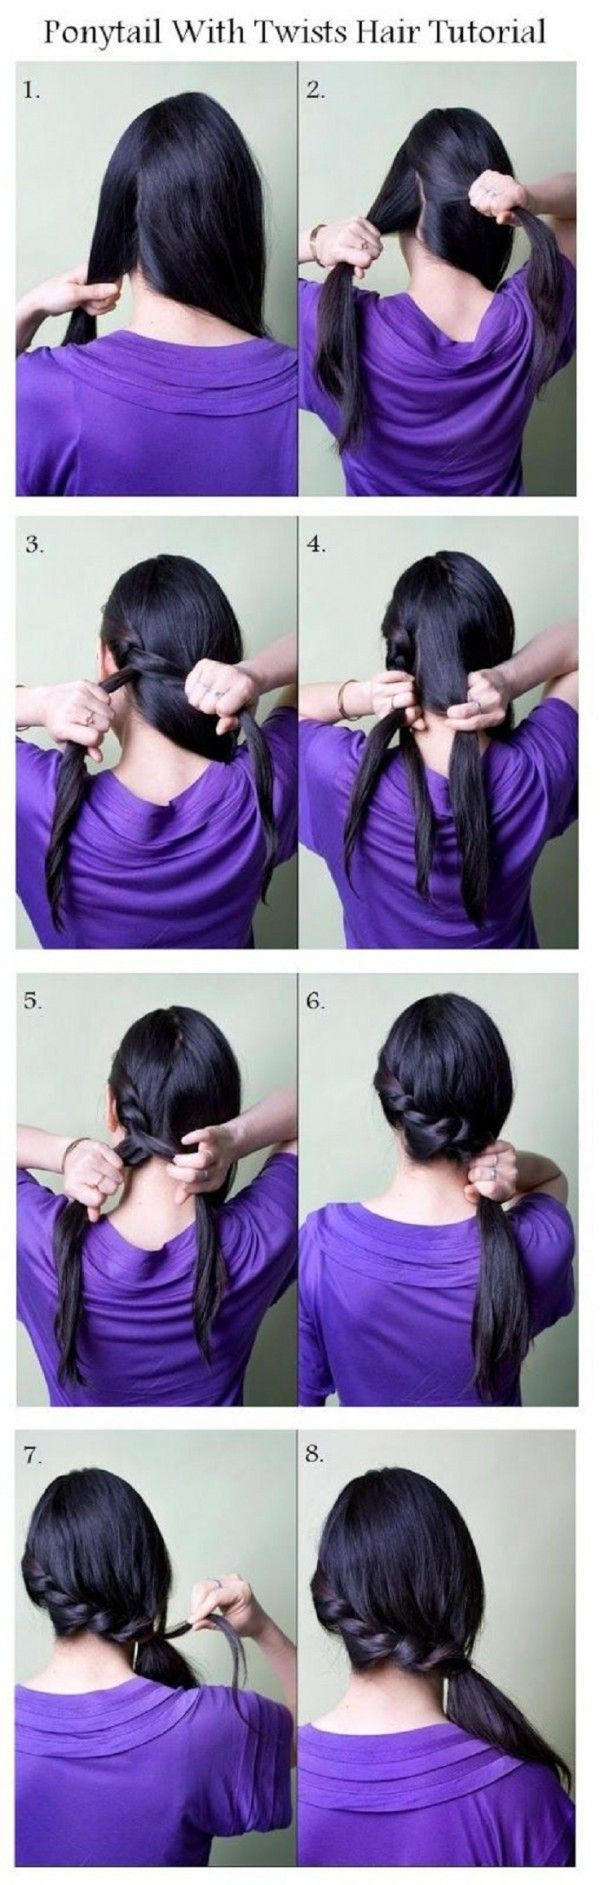 Fashion tipponytail with twists hair tutorial braid tutorial